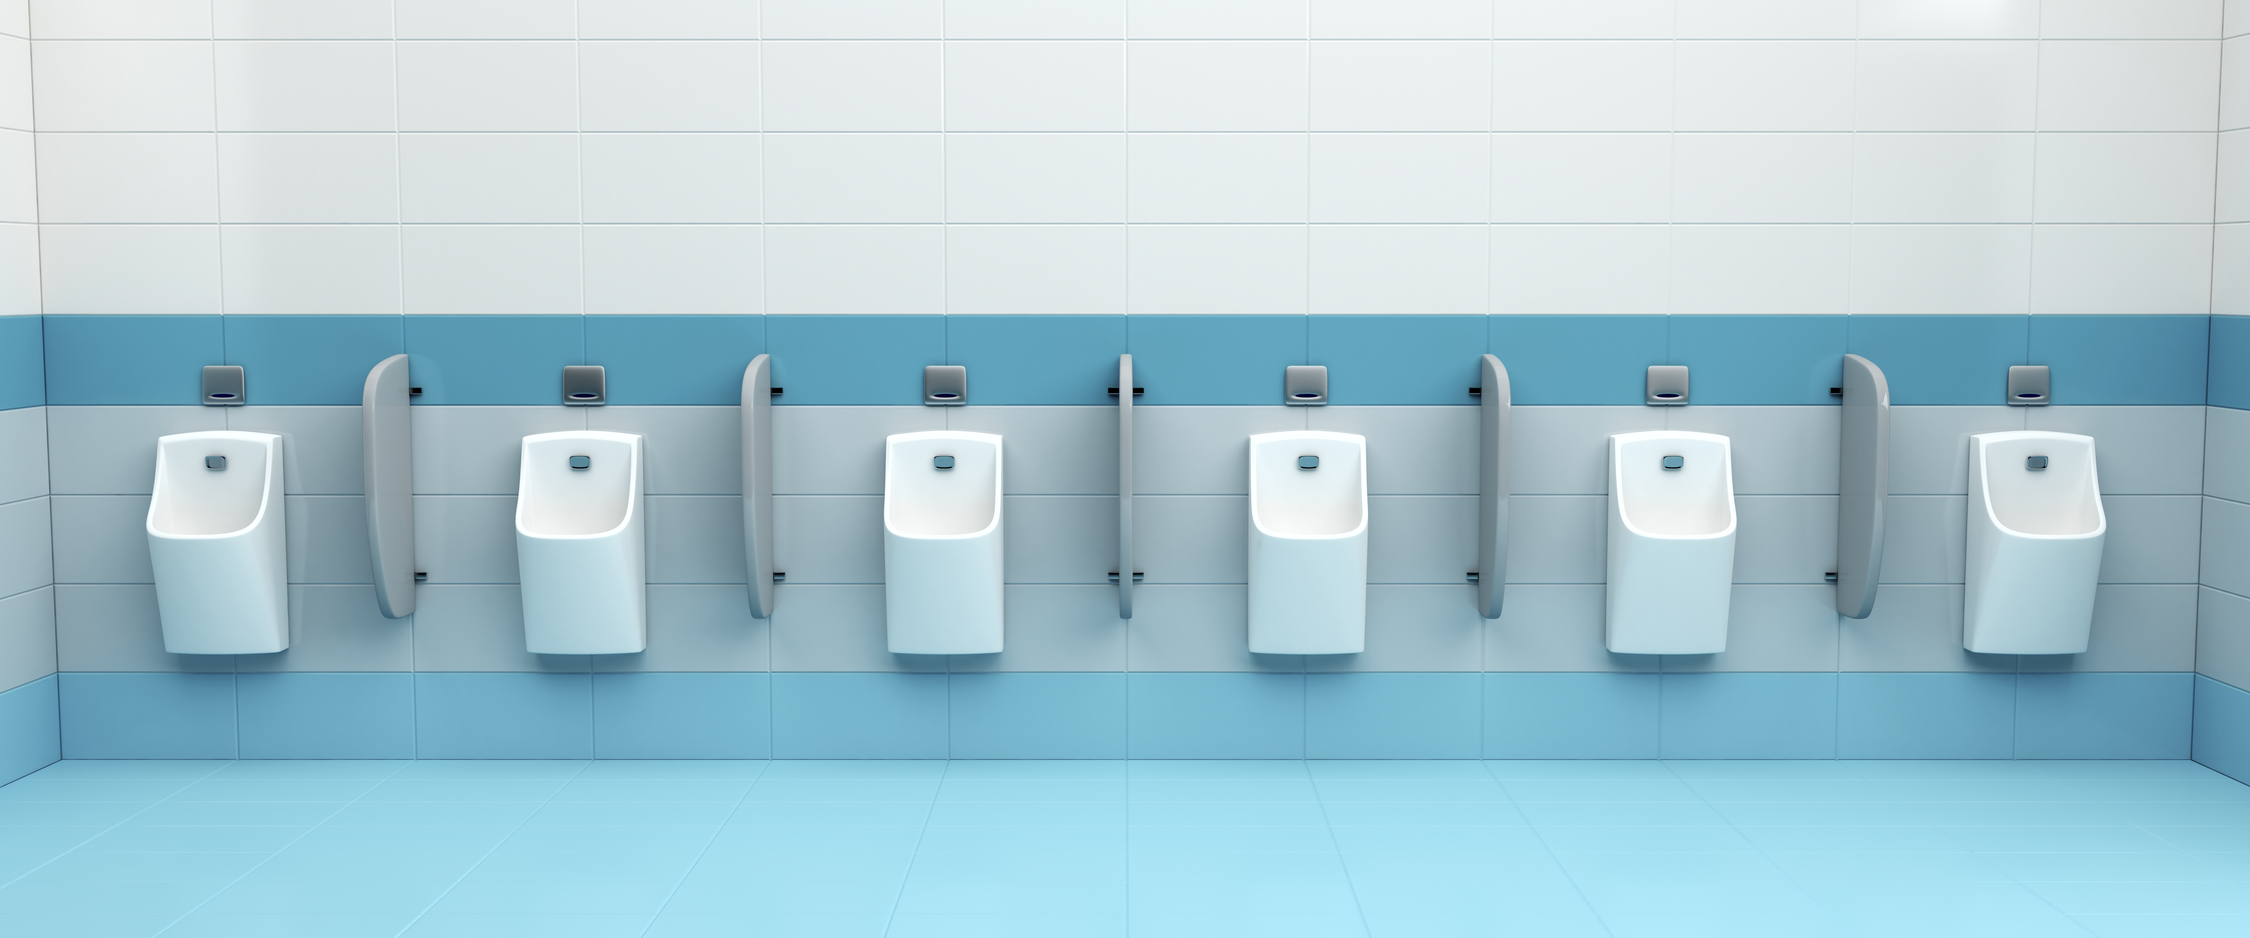 Swimming Pool Urinal : 'urine test reveals up to litres of pee in public